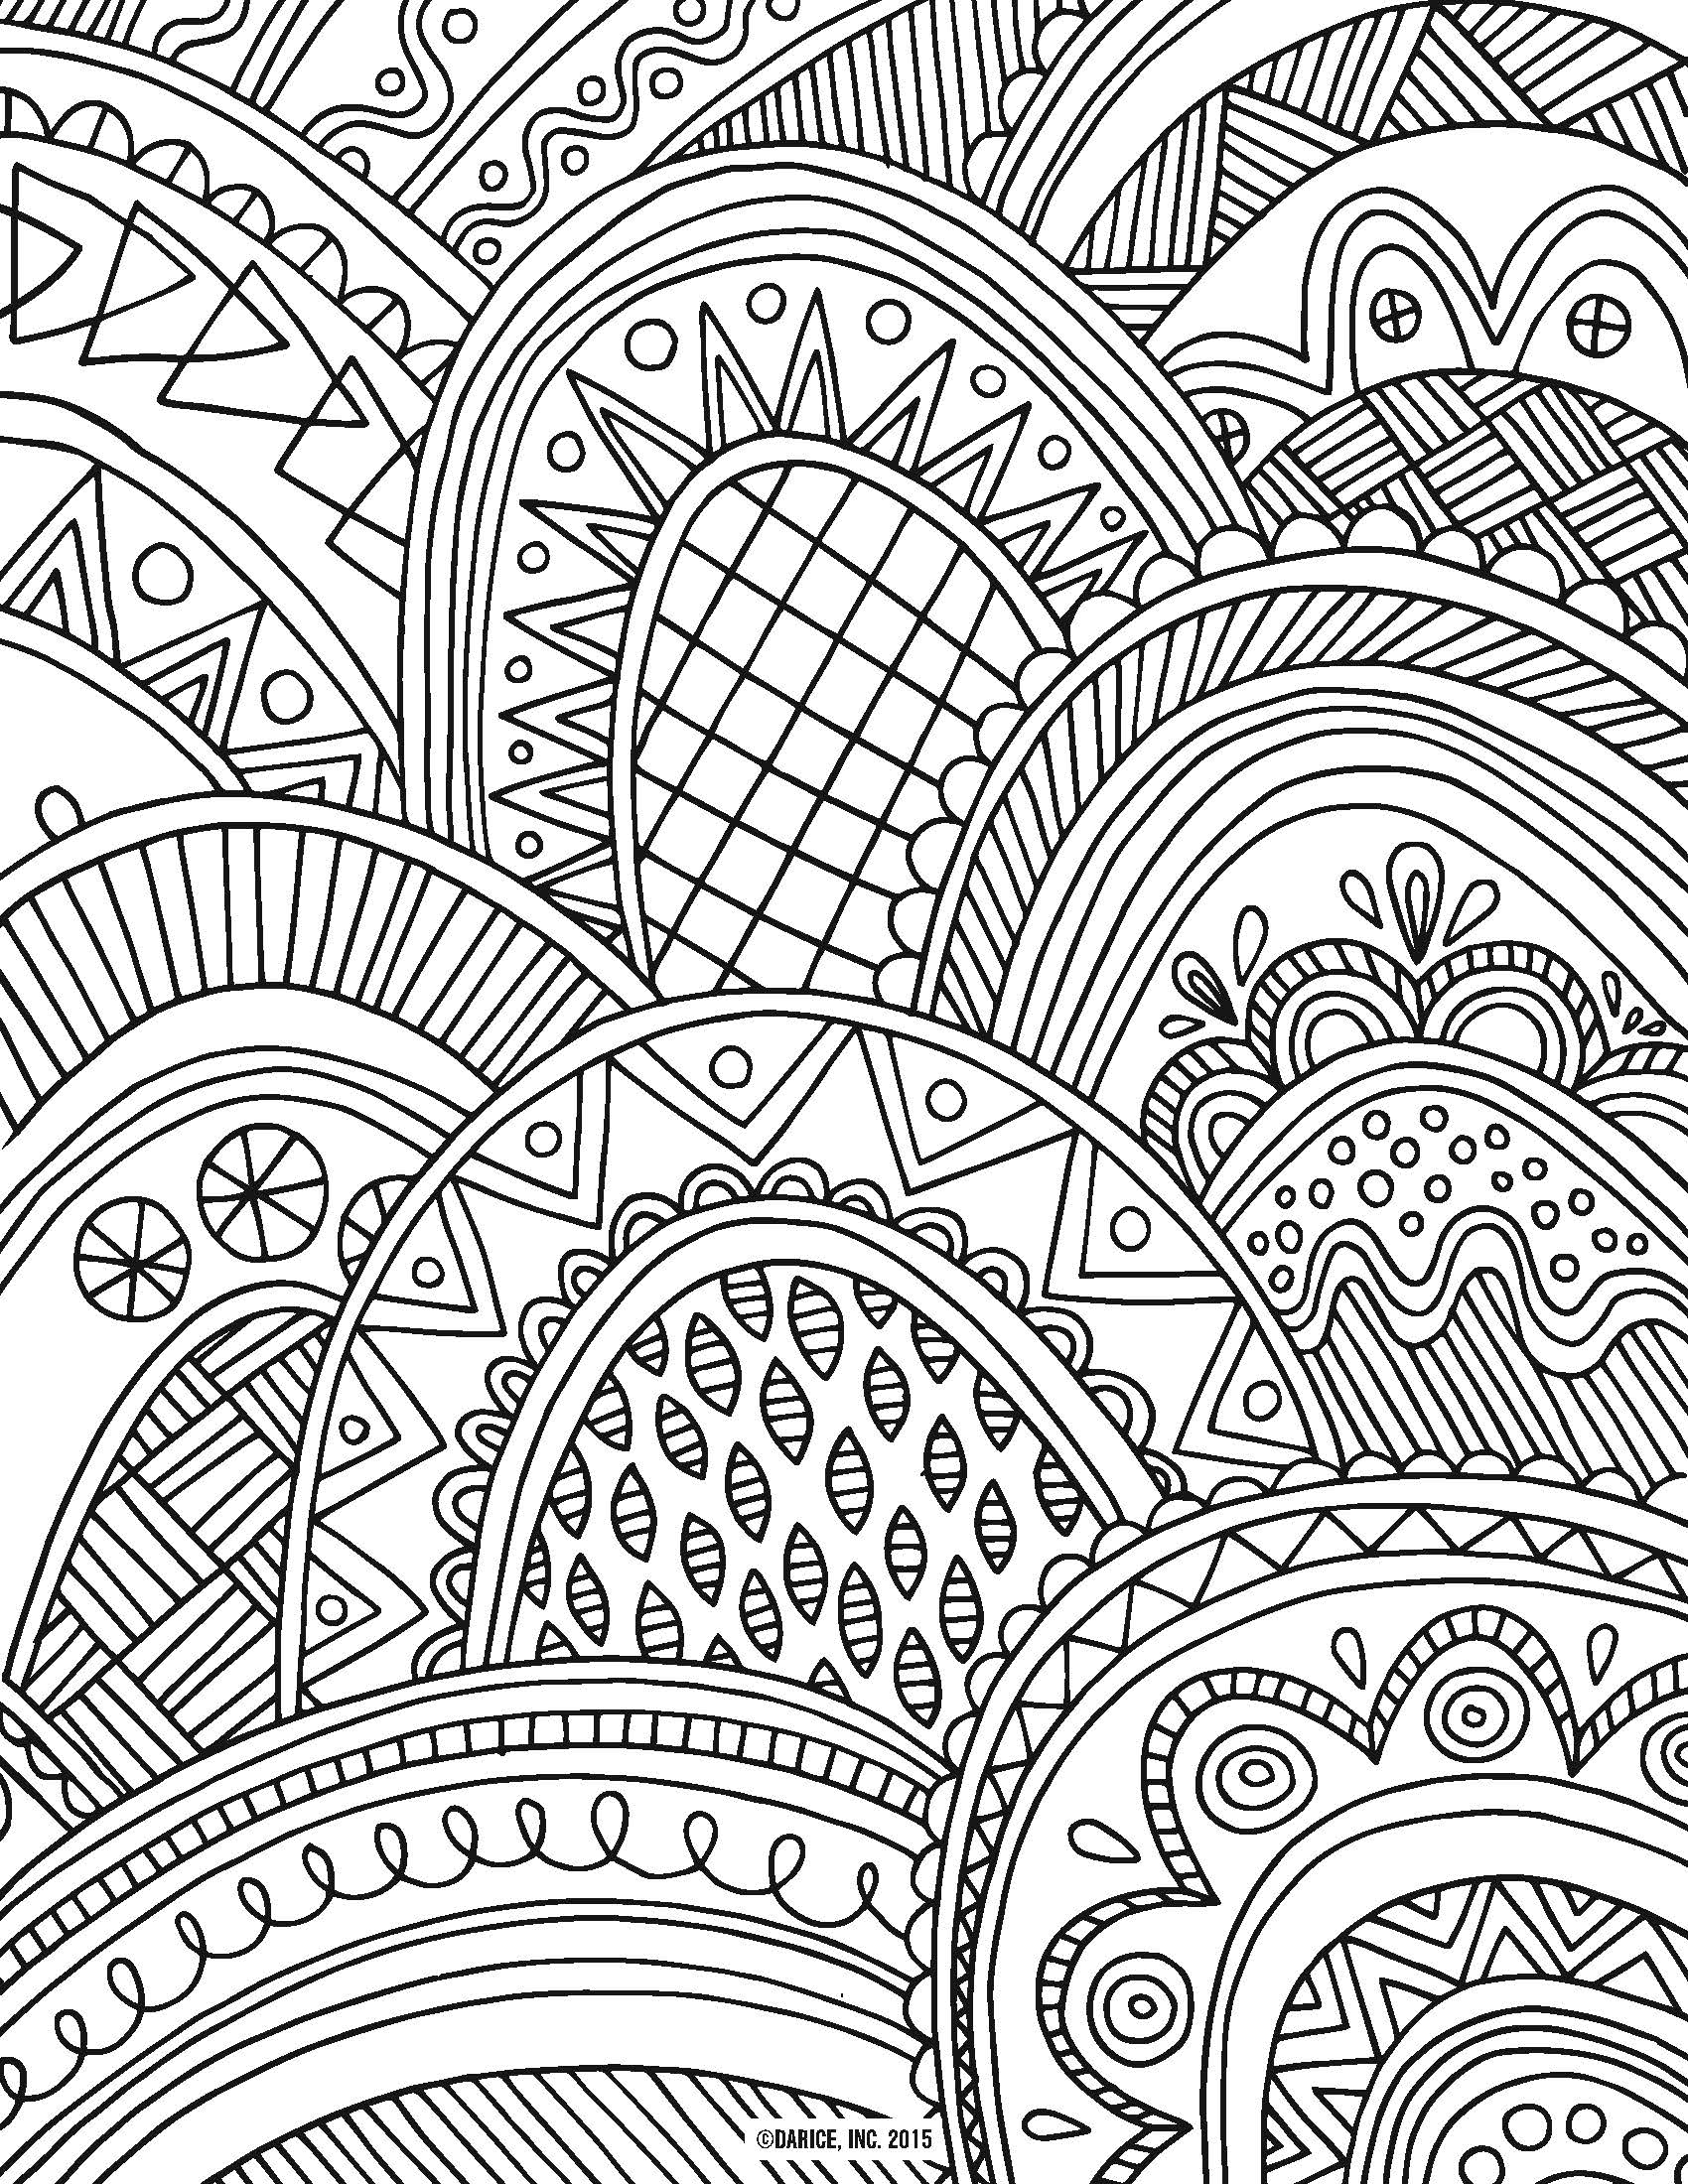 free printable coloring pages for adults and kids 40 top free coloring pages we need fun pages for and adults kids printable coloring free